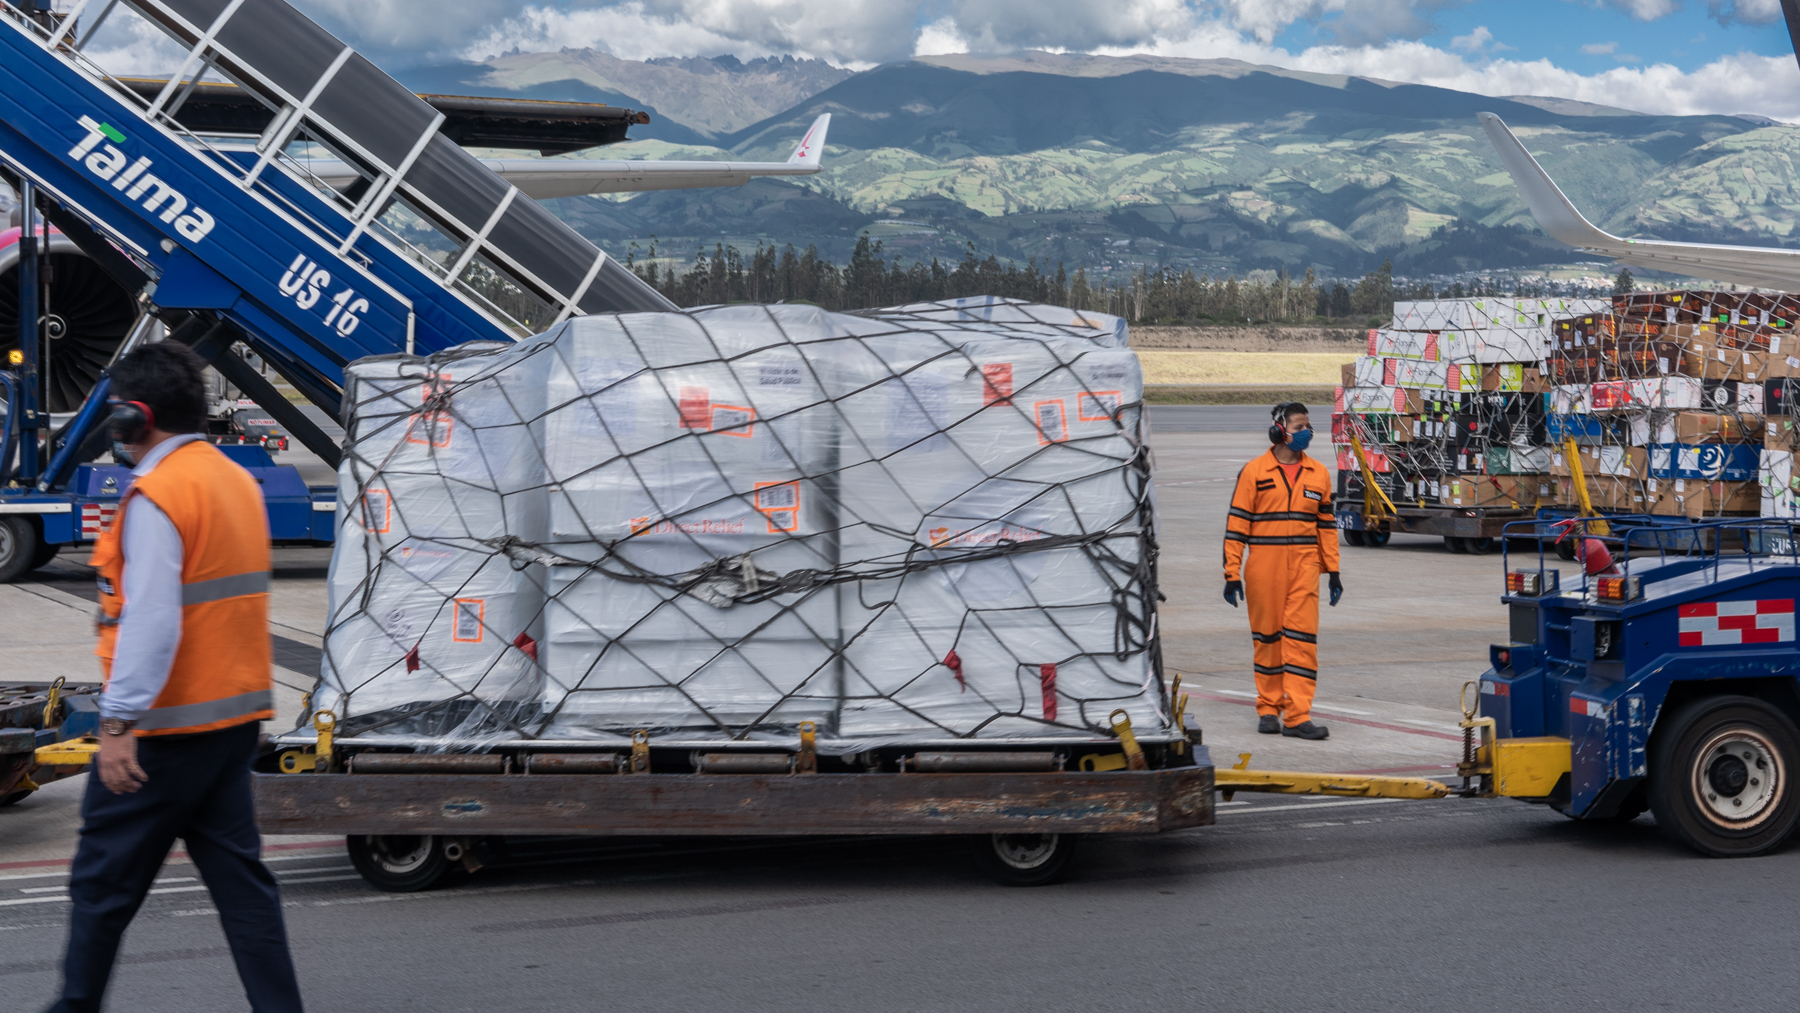 Health equipment donations from Direct Relief arriving to Ecuador on June 4, 2020 to mitigate the impact of Covid-19 emergency in the country. (Isadora Romero for Direct Relief)